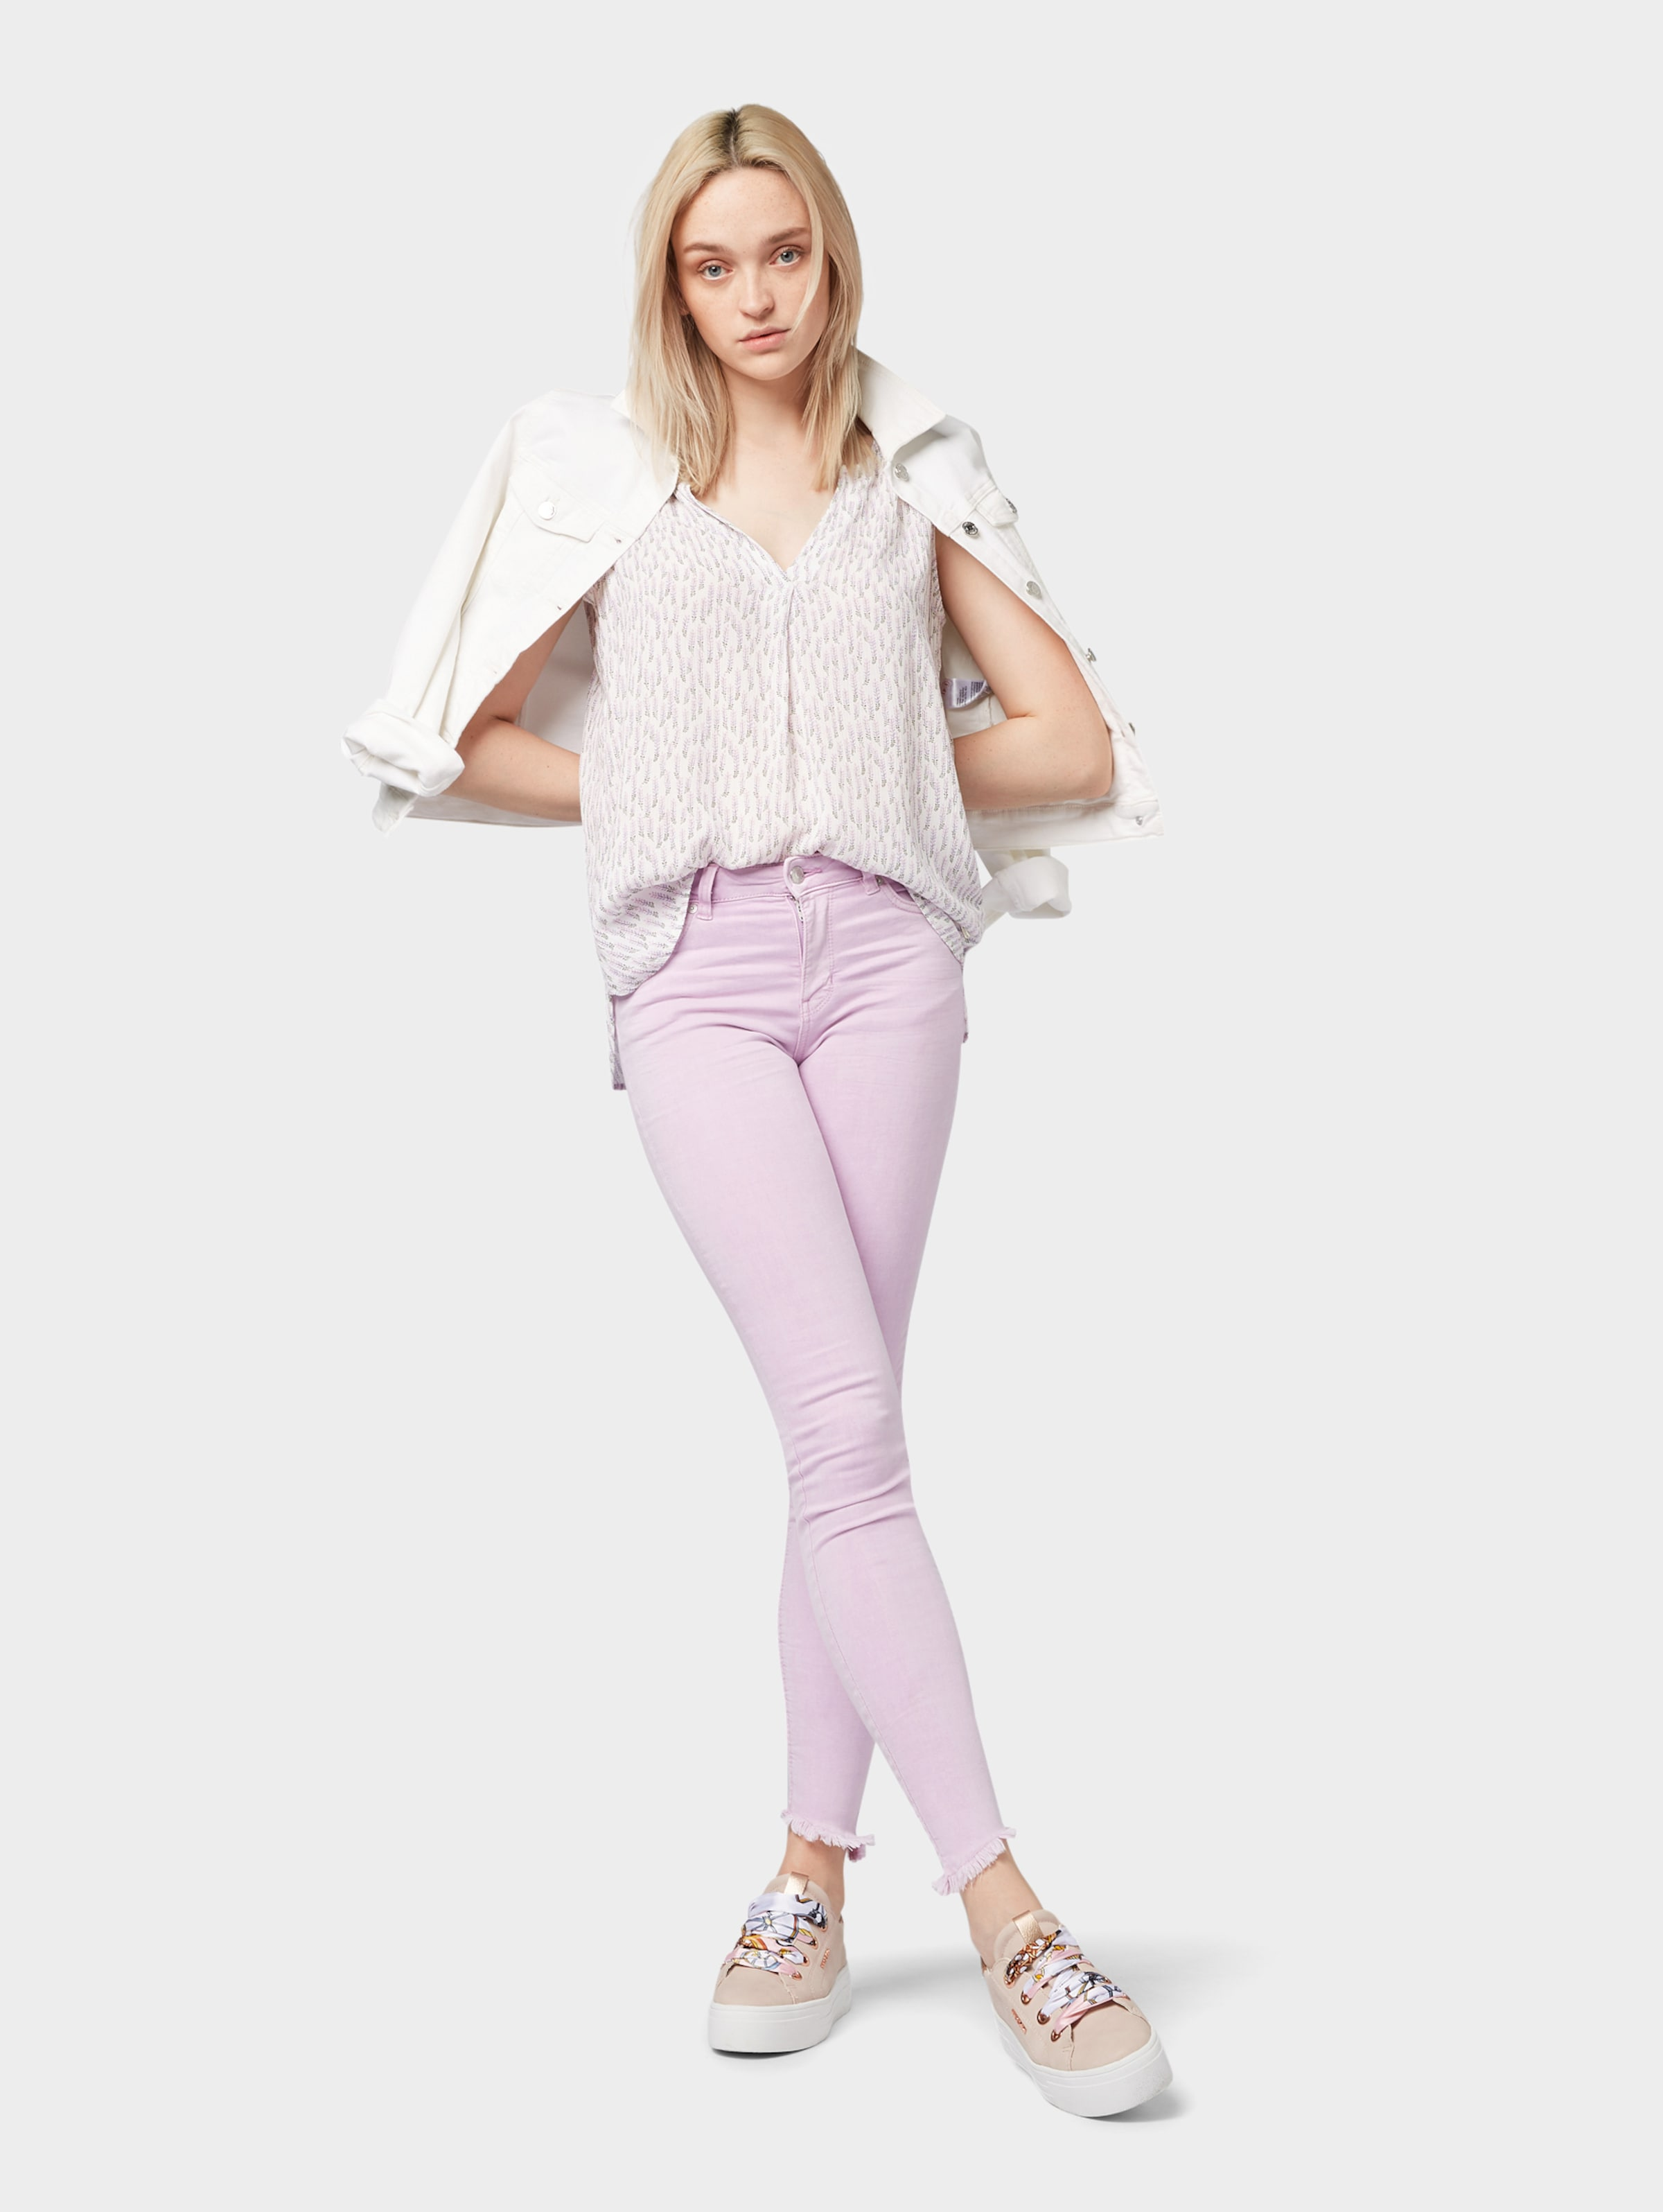 Bluse Tom Denim Tailor In Offwhite 0mvnwN8Oy